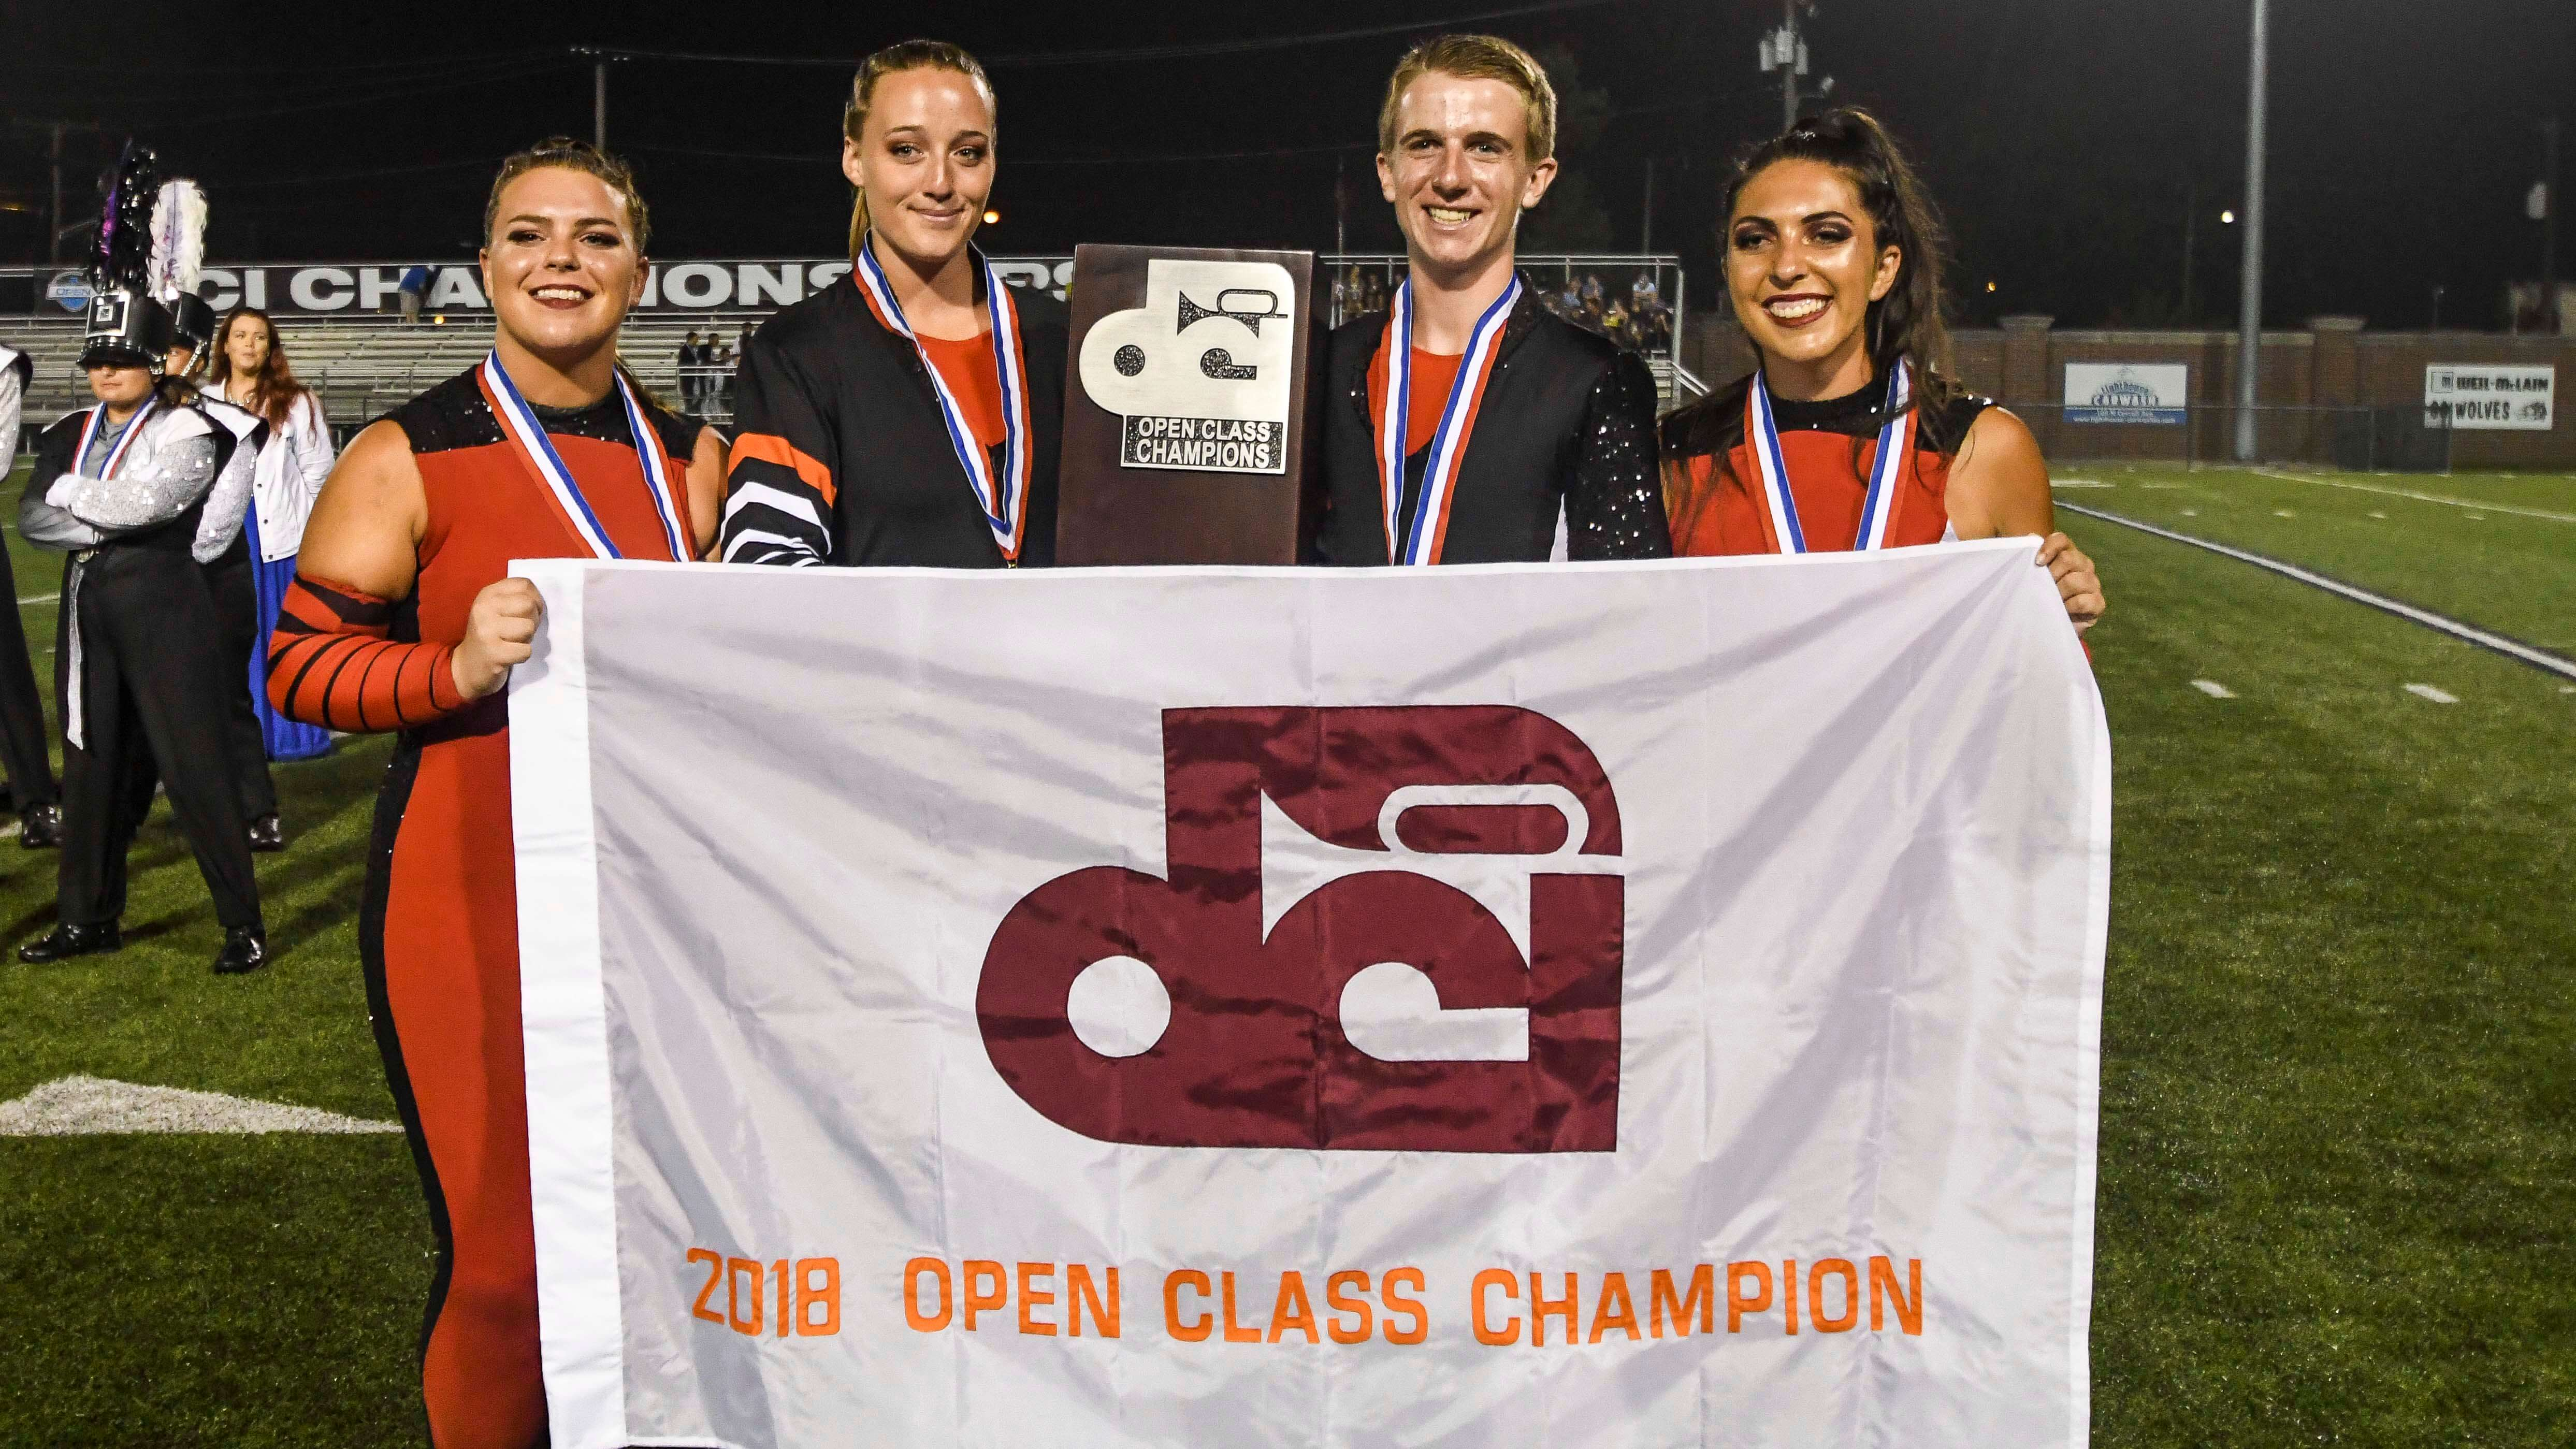 Vanguard Cadets go back-to-back with Open Class gold